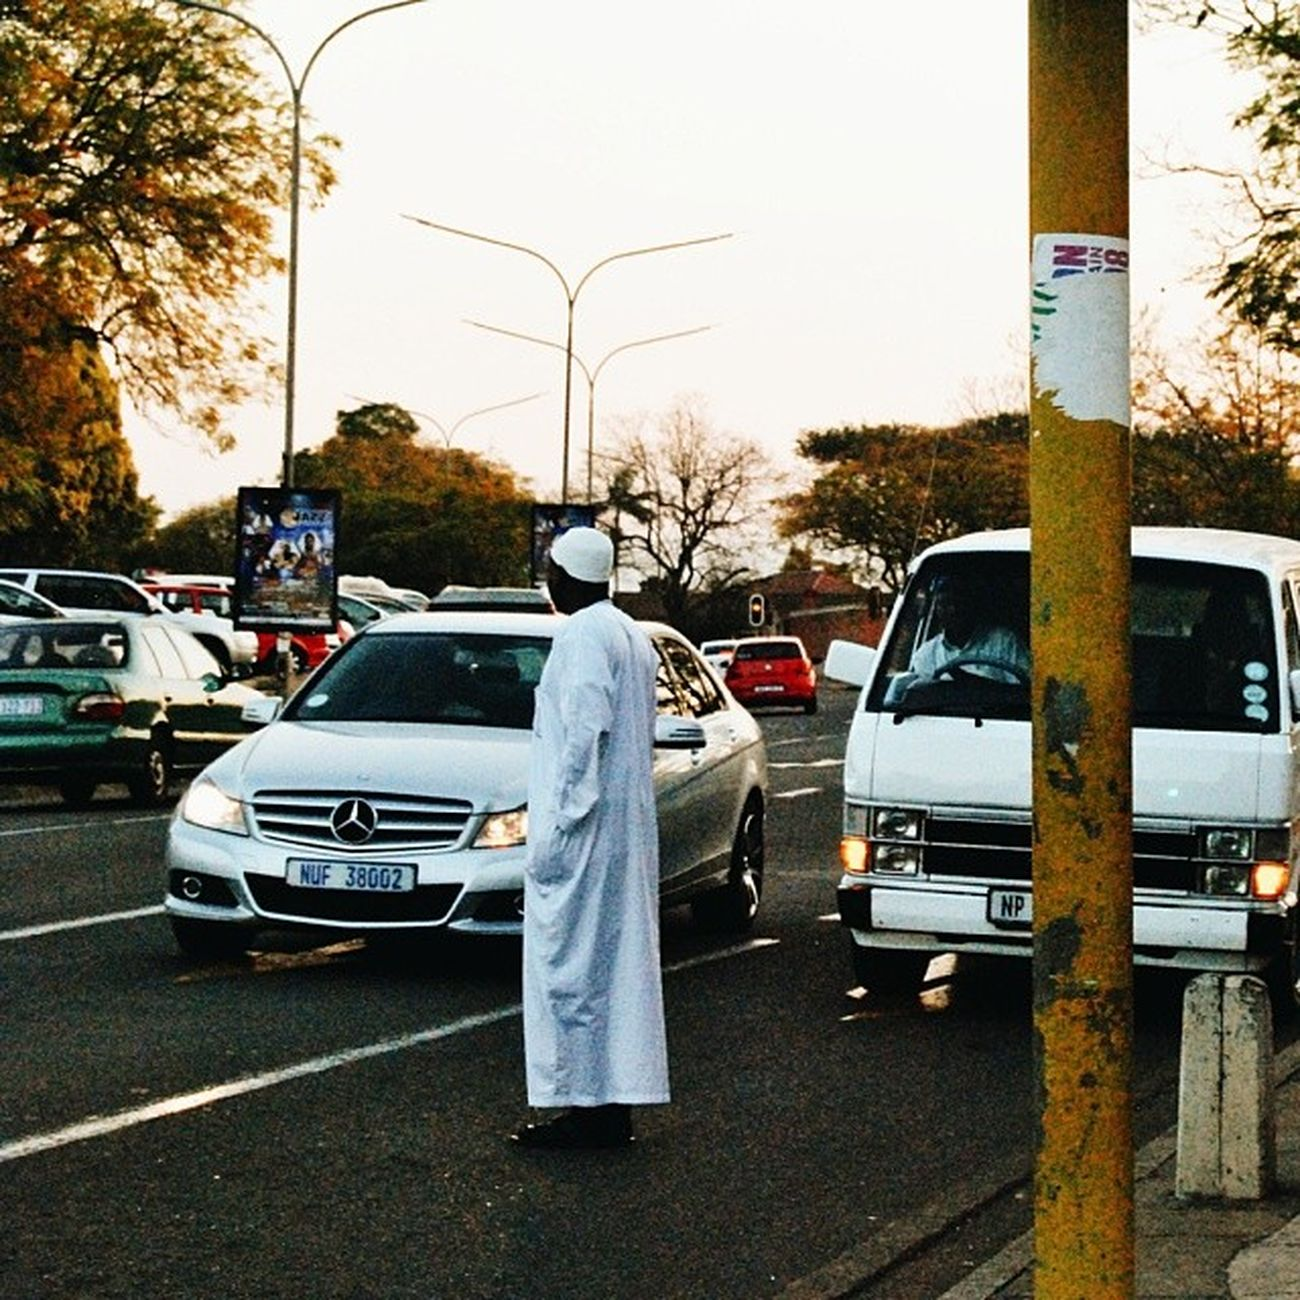 How to cross a street in South Africa. Street Streetphotography Instagram_sa Igerssouthafrica mobilephotography nikon man crossing islam taxi vsco vscocam vsco_hub instadaily instagood instafollow twilight shoot2kill takephotos liveauthentic life snapture wednesday humpday pietermaritzburg africa 230714